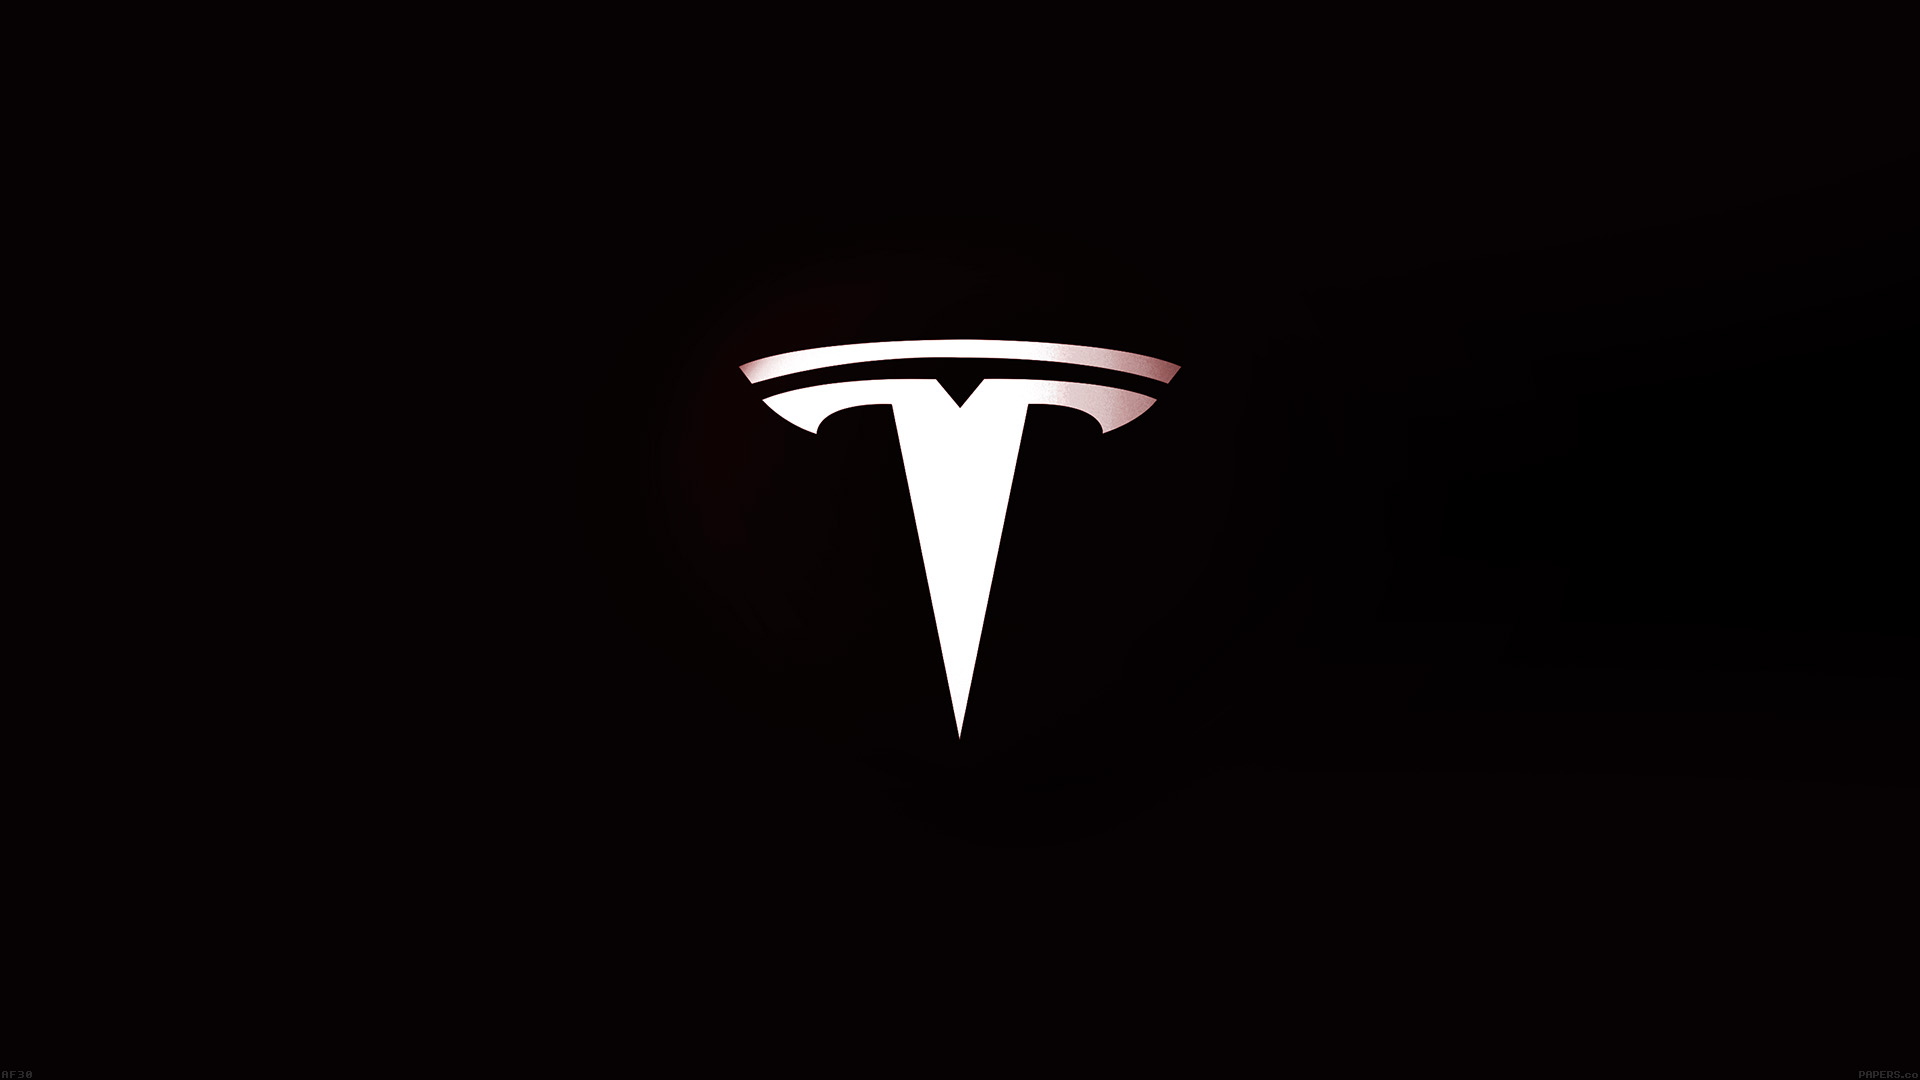 af30-tesla-motors-logo-art - Papers.co